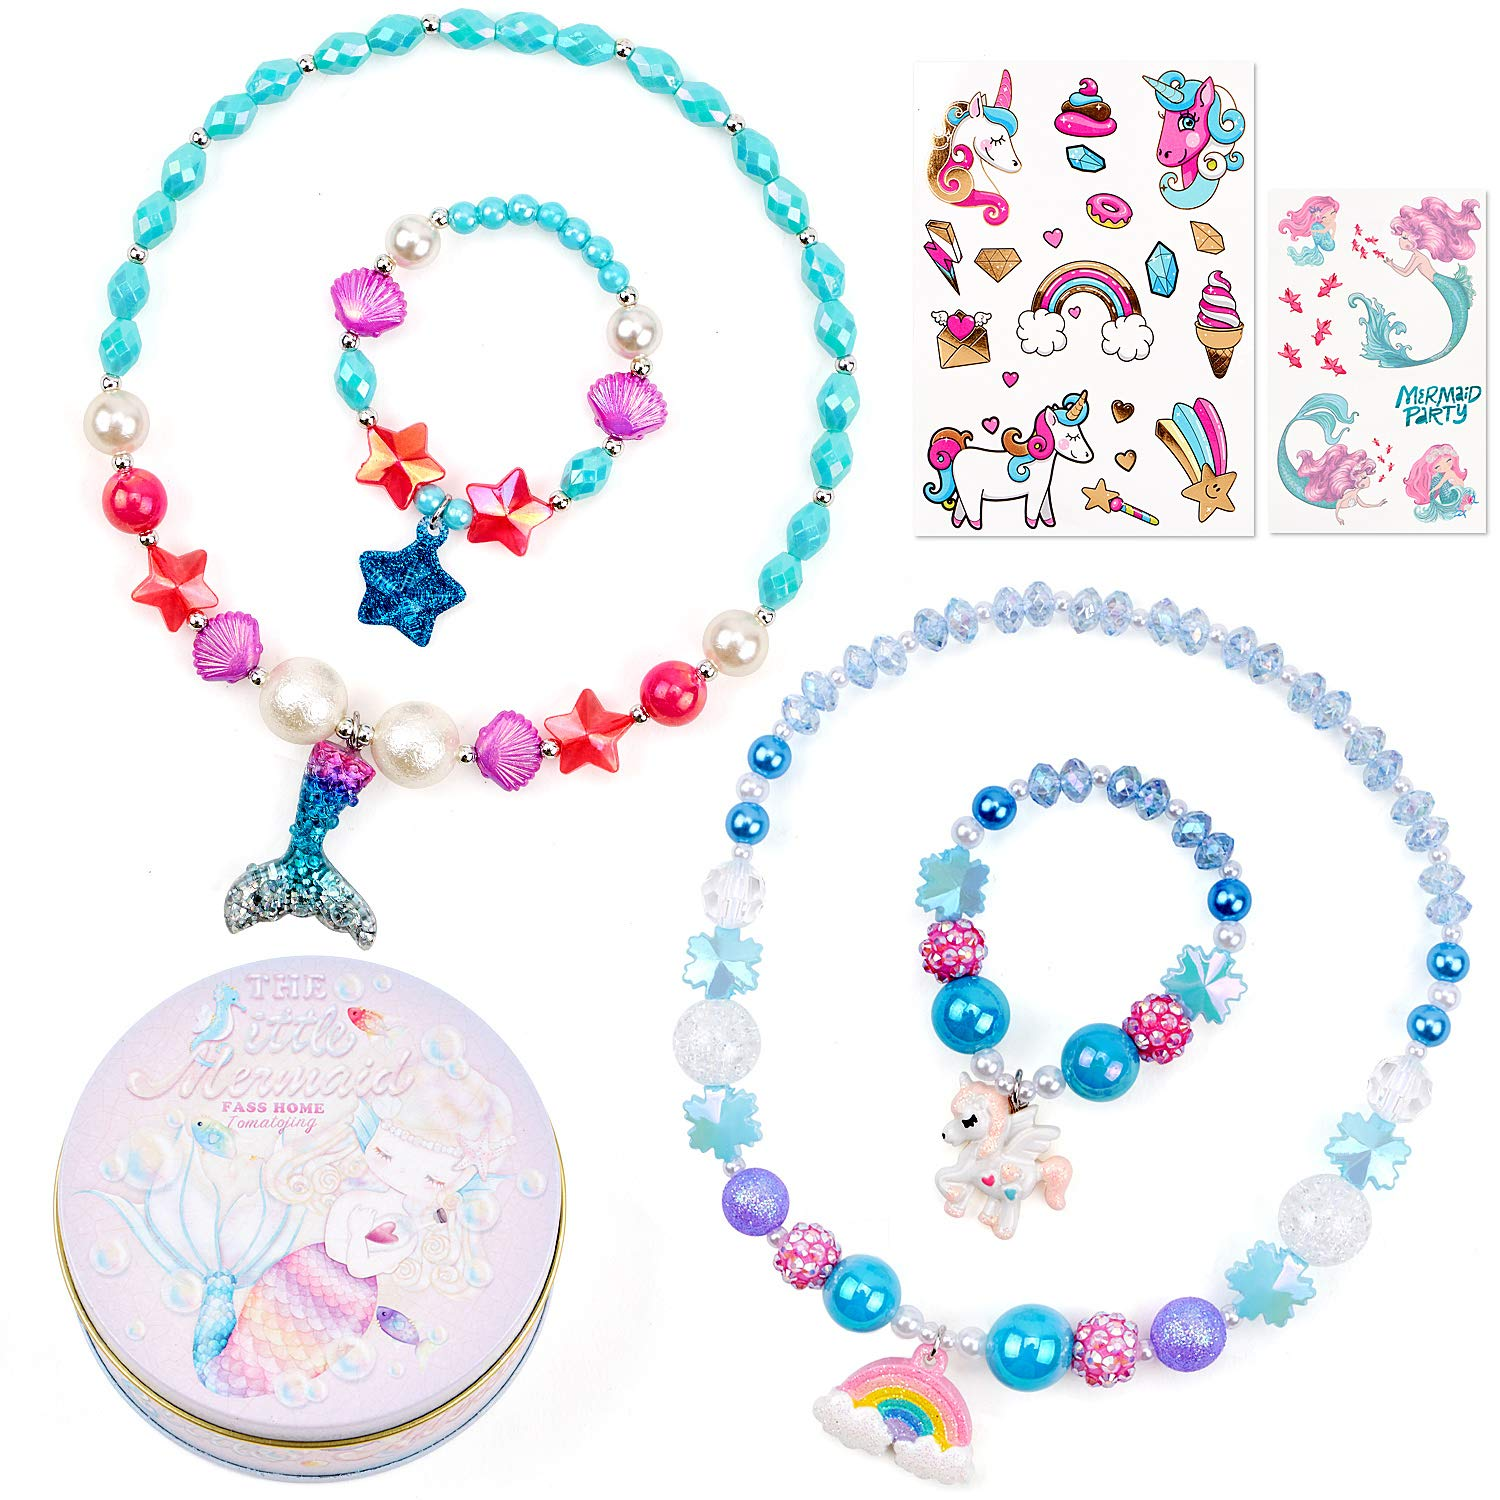 Beaded Necklace and Bracelets for Girls Unicorn Mermaid Rainbow Star Pendant Colorful Princess Necklace Dress Up Pretend Play Jewelry Set Party Favor Gifts for Kids